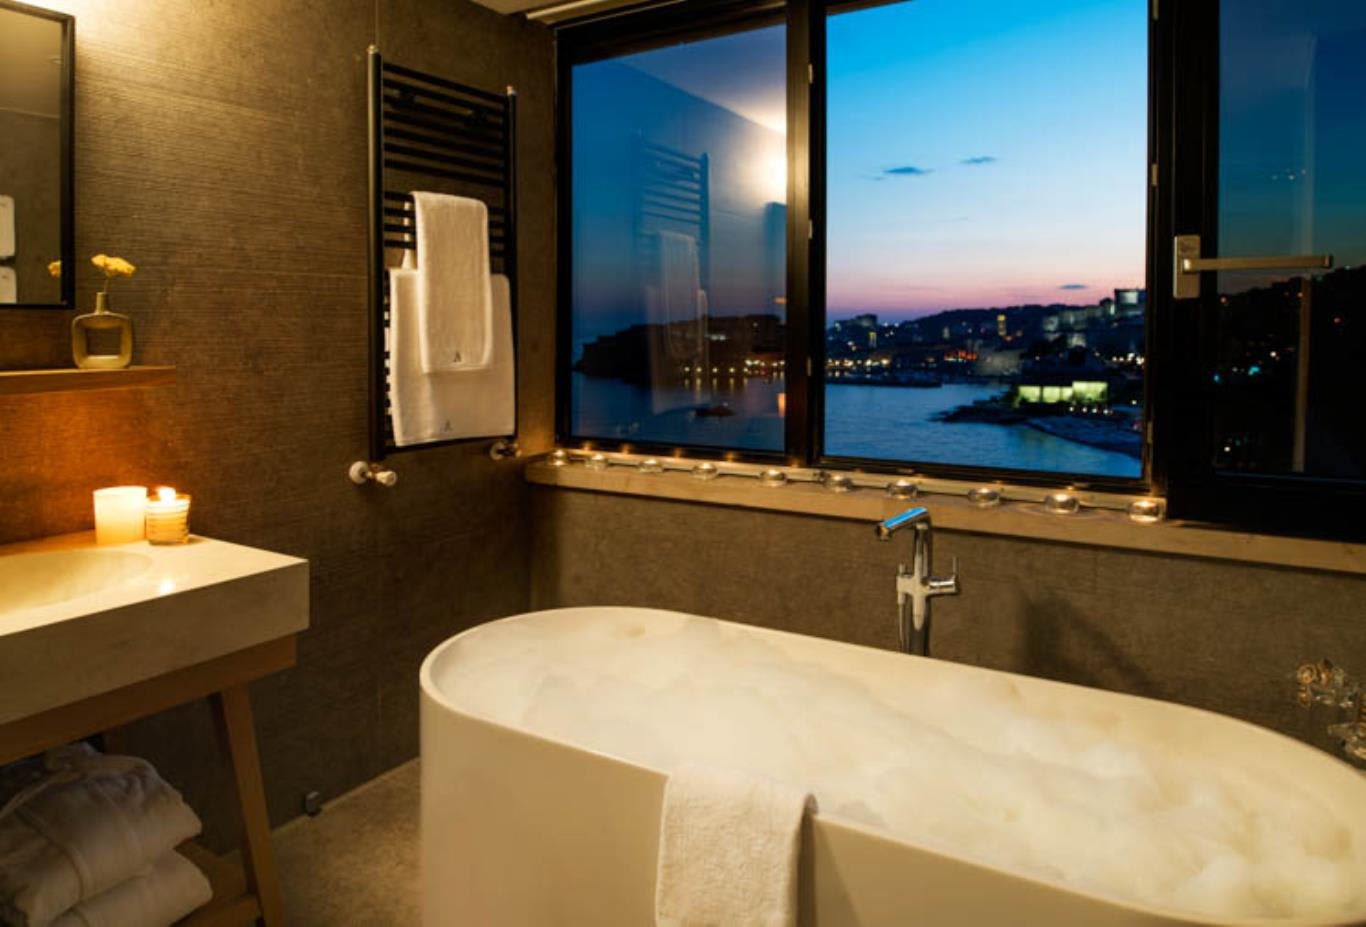 Deluxe Suite Tower bath and views